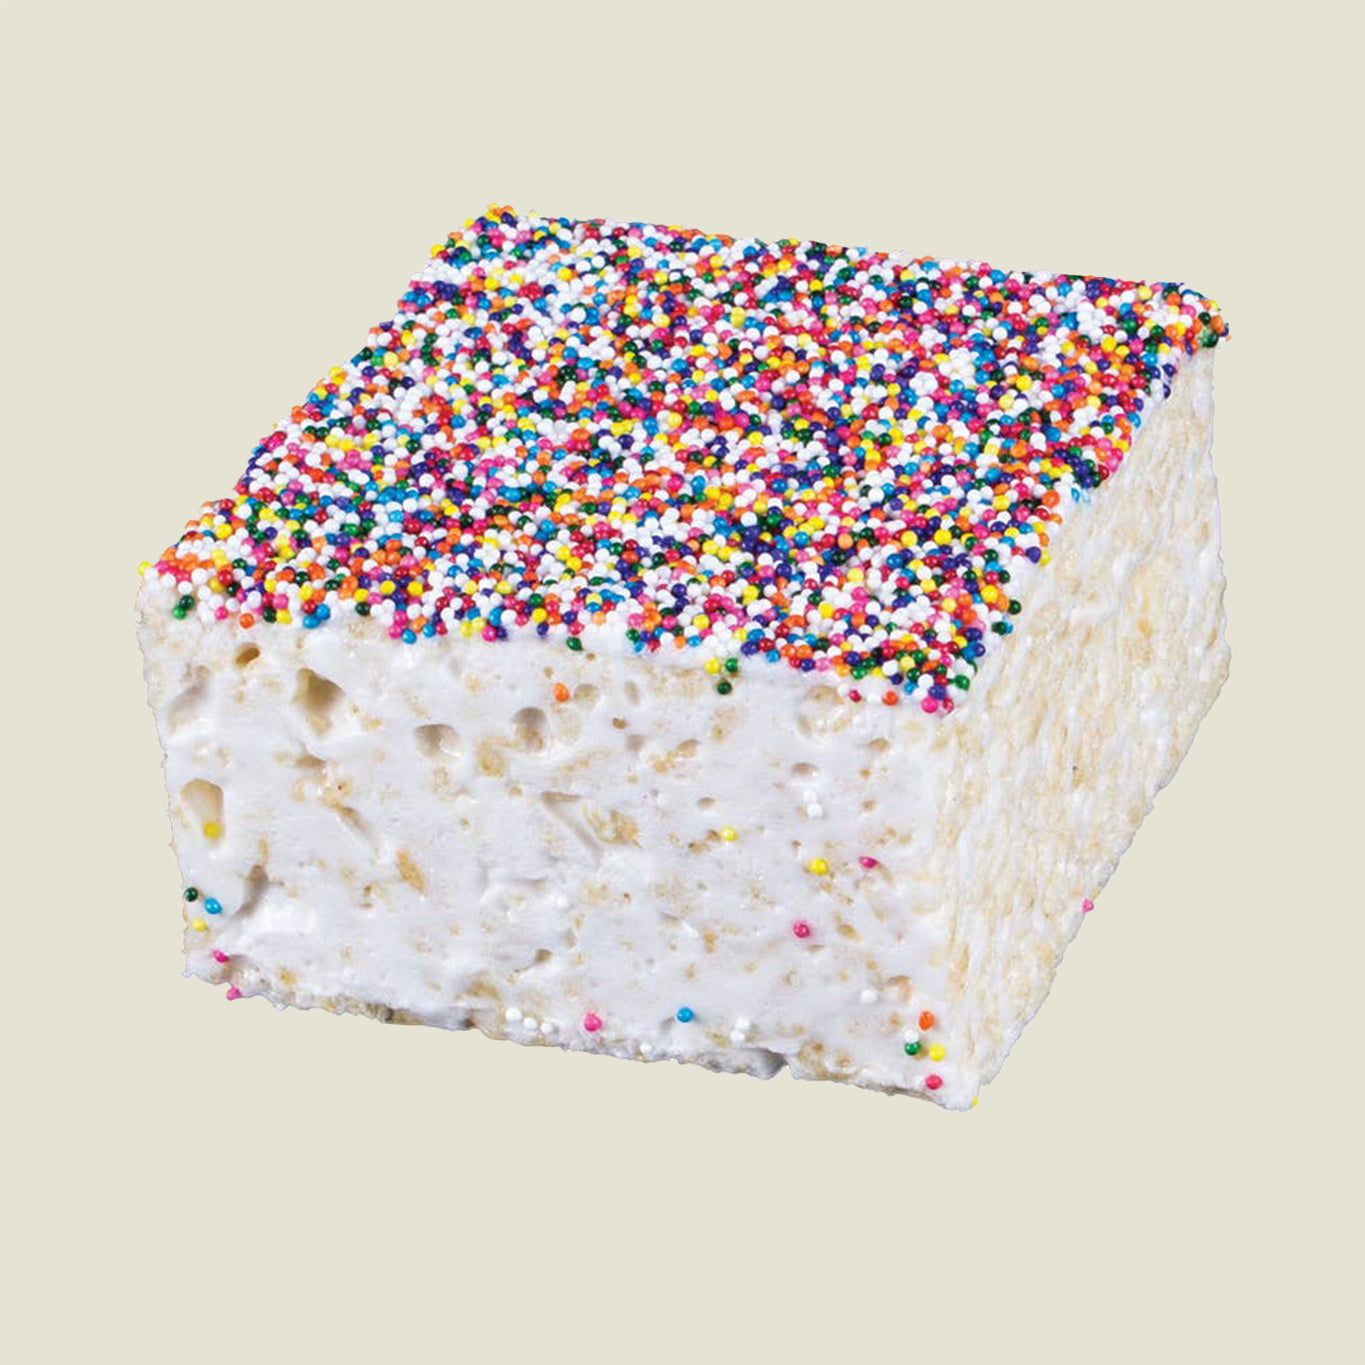 Rainbow Non Pareils - Blackbird General Store